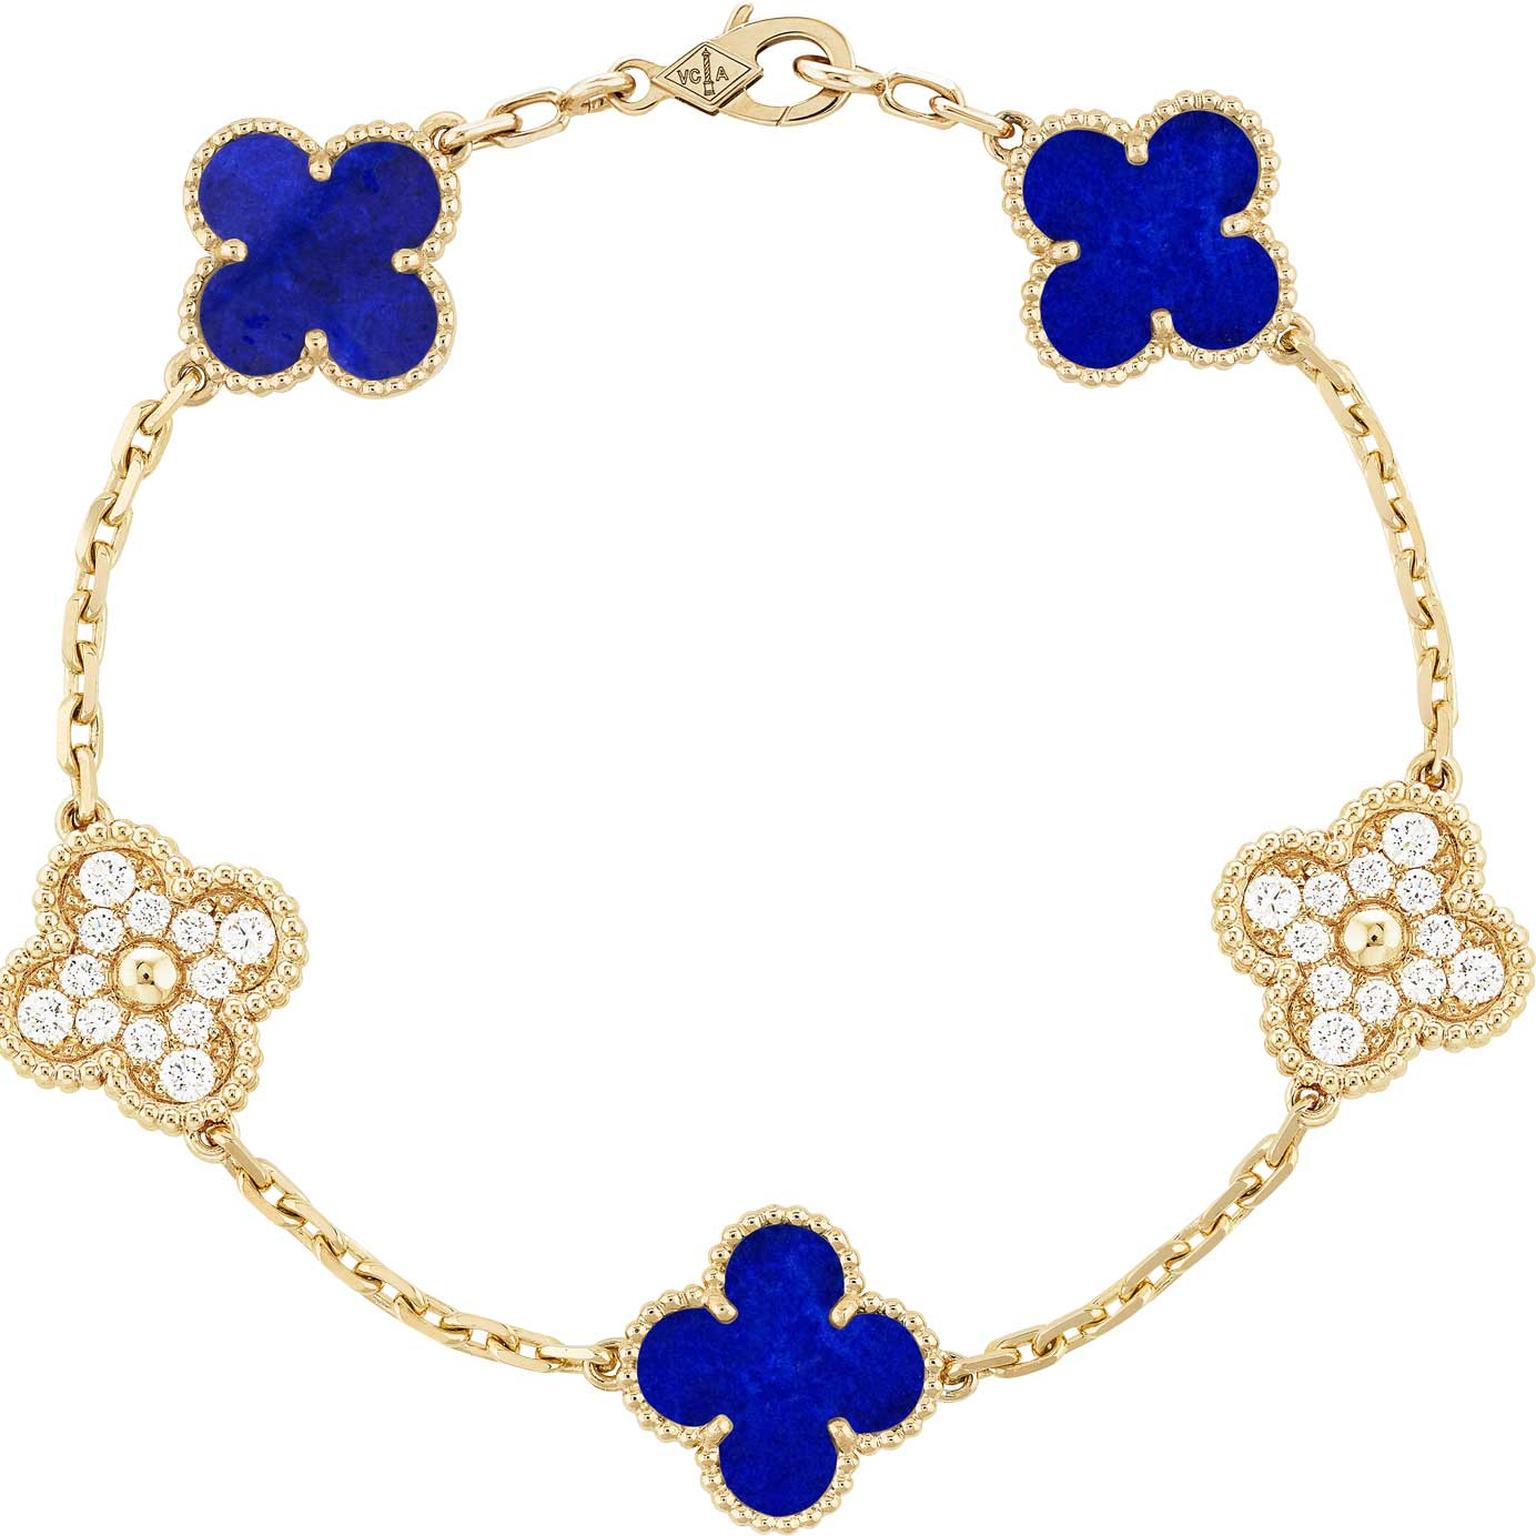 Van Cleef Arpels Vintage Alhambra necklace in lapis lazulil created in limited numbers for the jewel's 50th anniversary